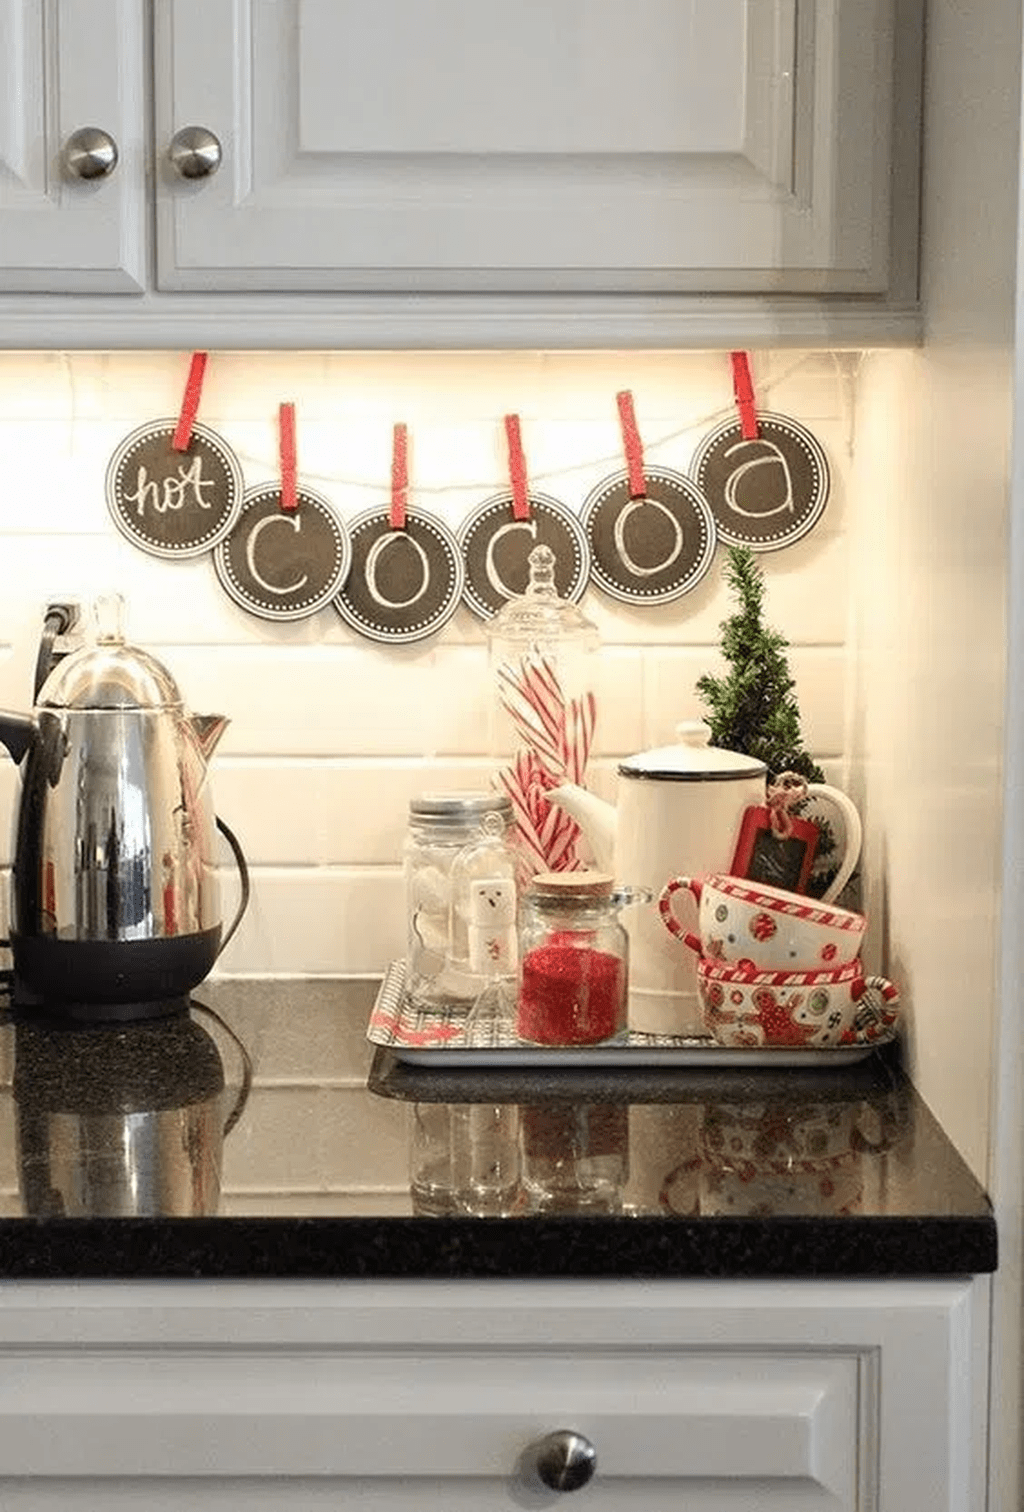 Inspiring Winter Kitchen Decor Ideas You Can Try 25